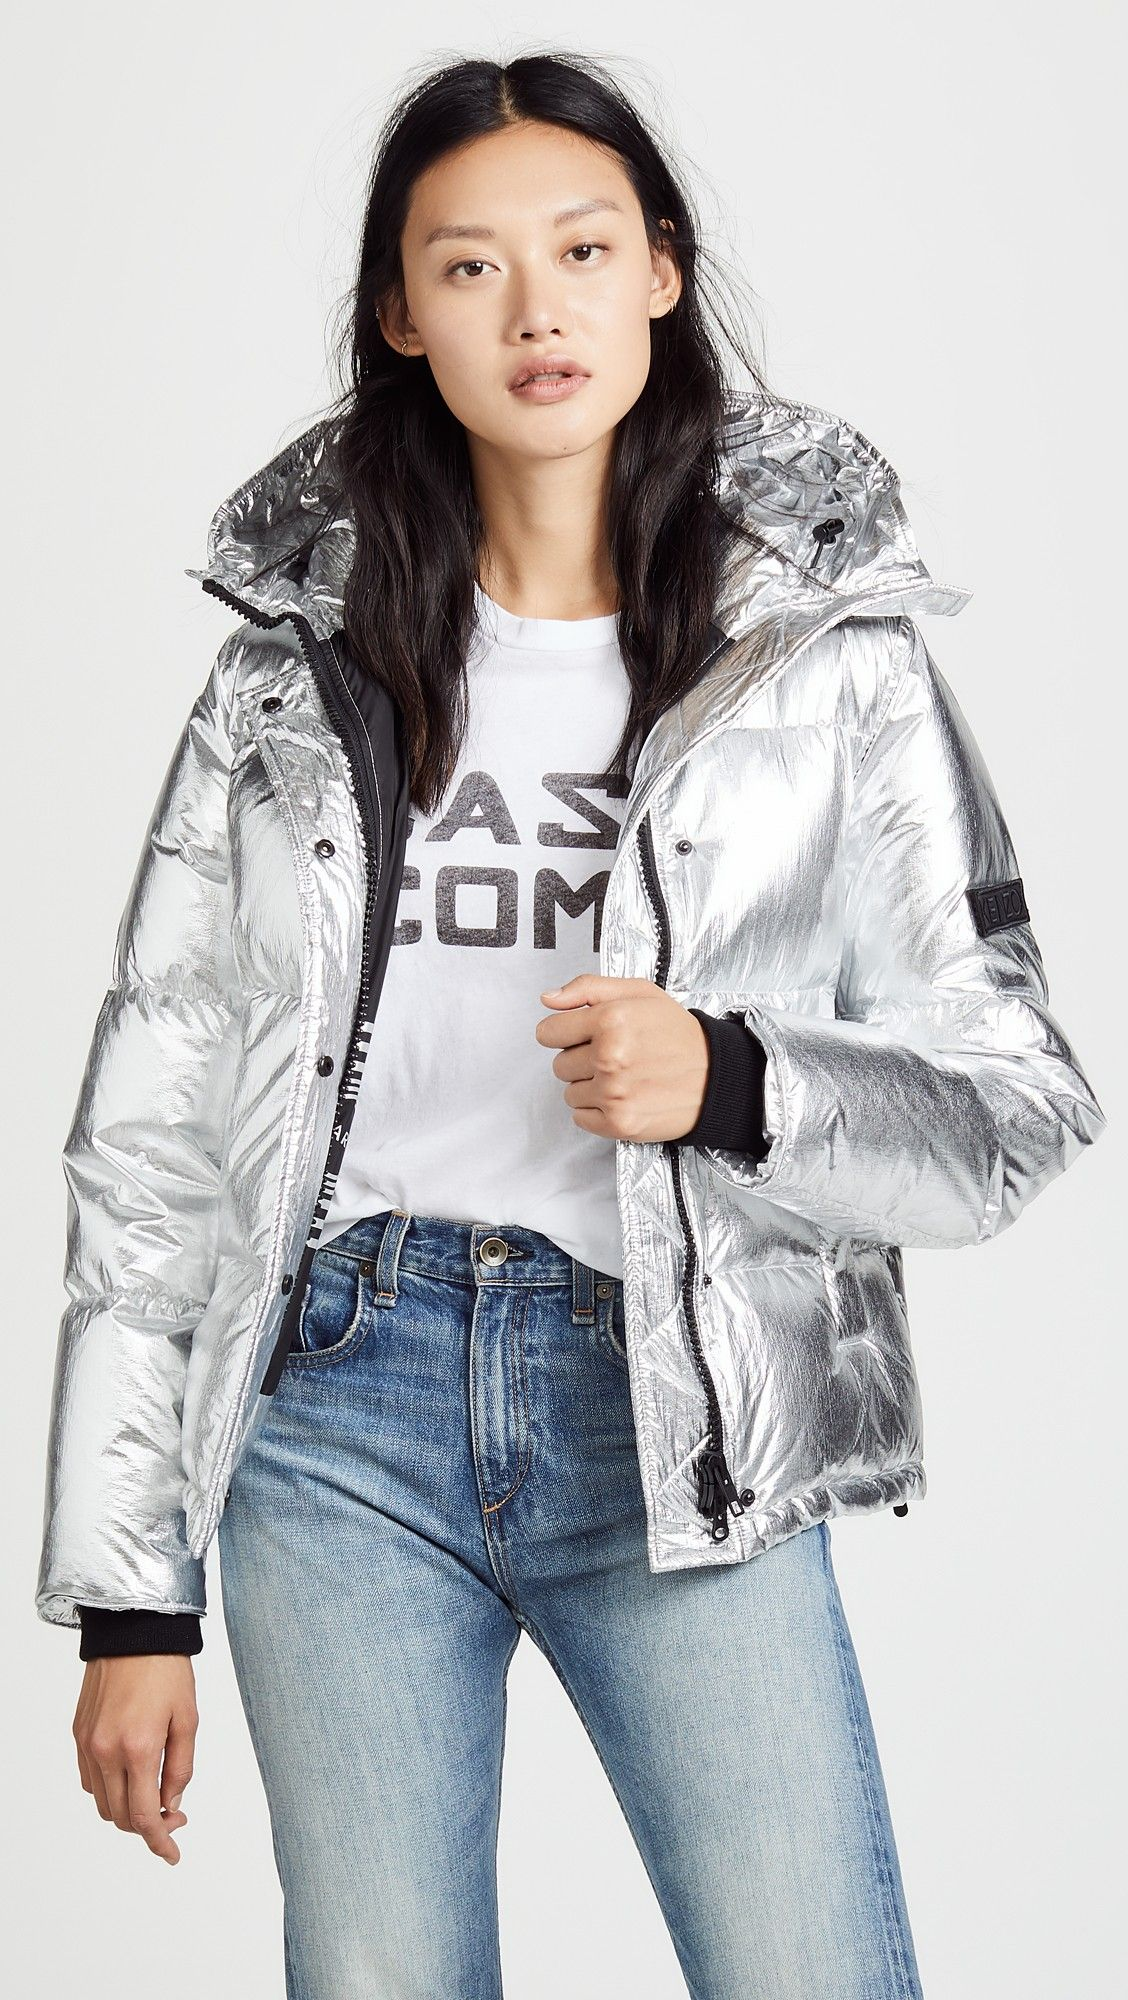 678f73f8 Down Jacket | The S.H.I.A.D.C. Cyberwomen Agents in Gold, Silver and ...